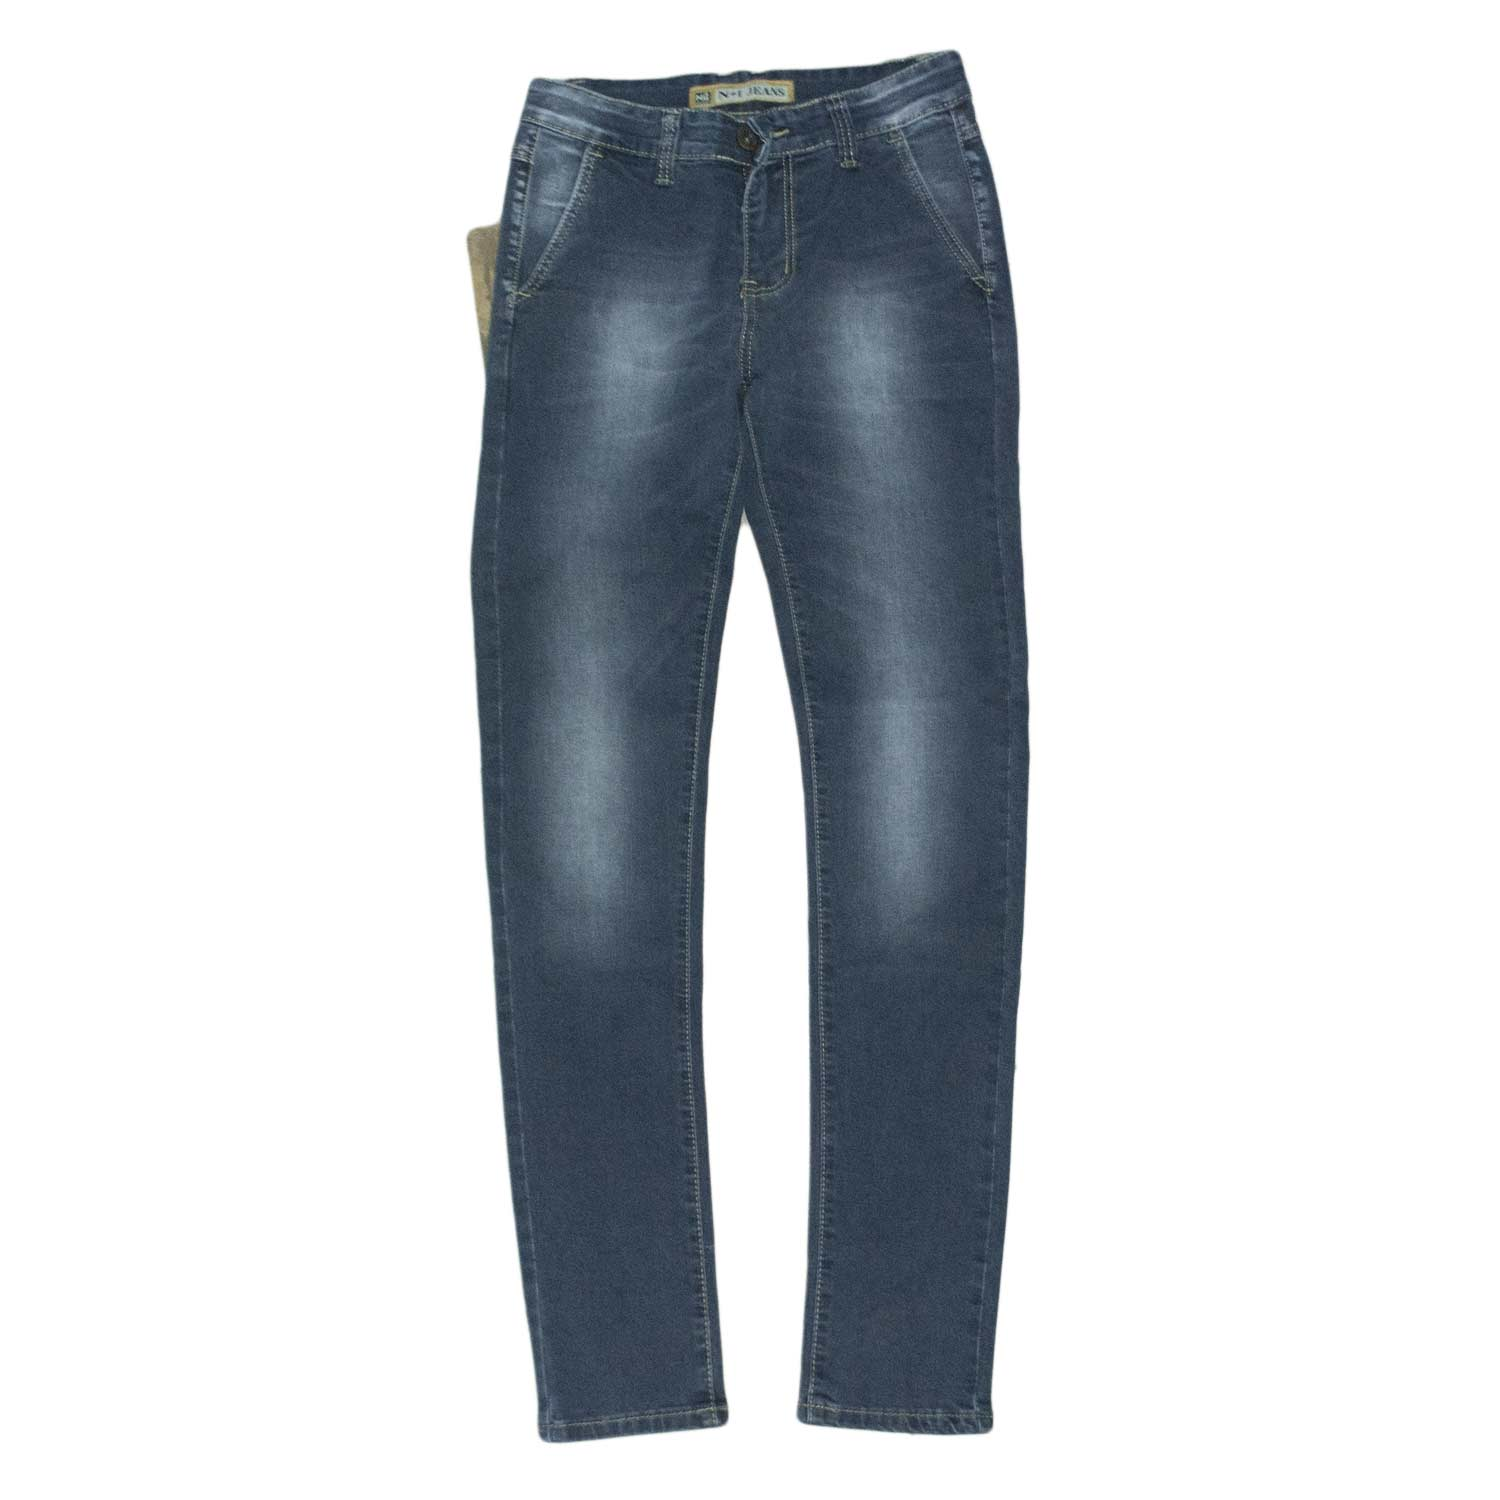 jeans man uomo blu moda made in italy.